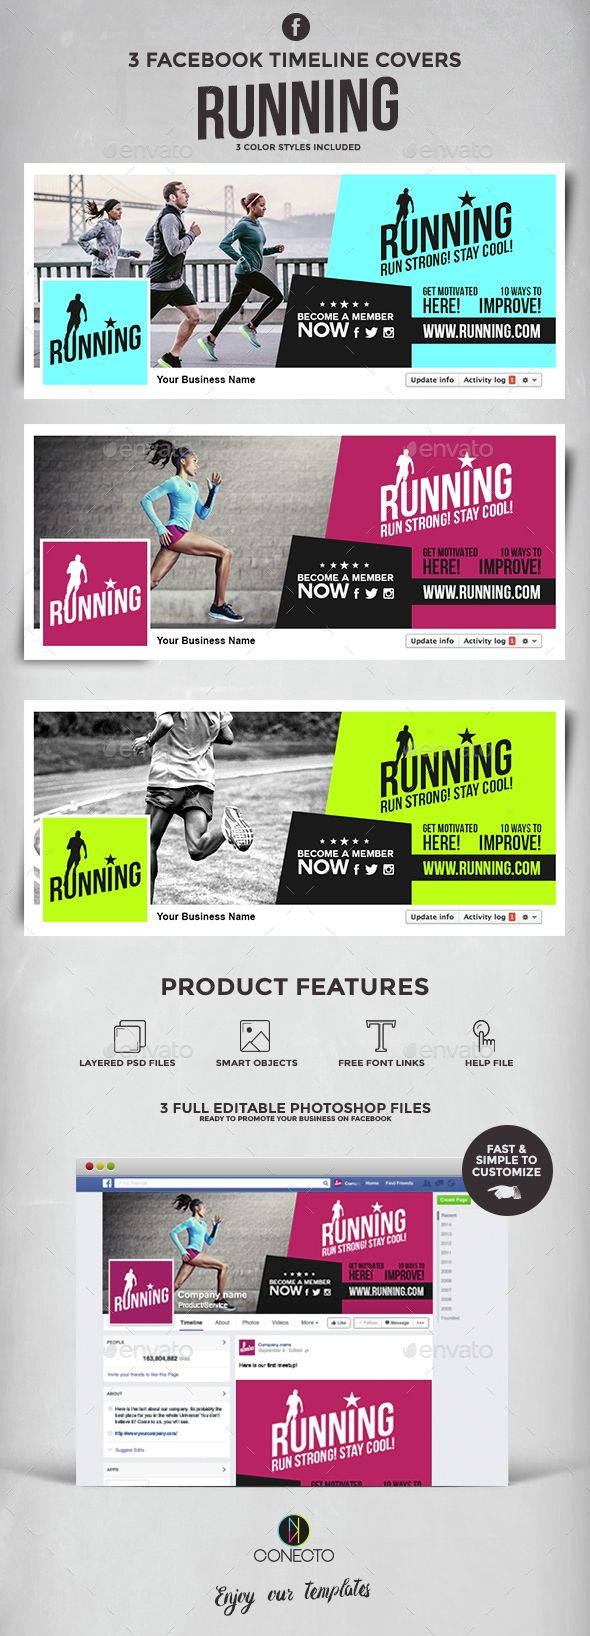 Running Facebook Timeline Covers Template PSD. Download here: http://graphicriver.net/item/facebook-timeline-covers-running/14578583?ref=ksioks